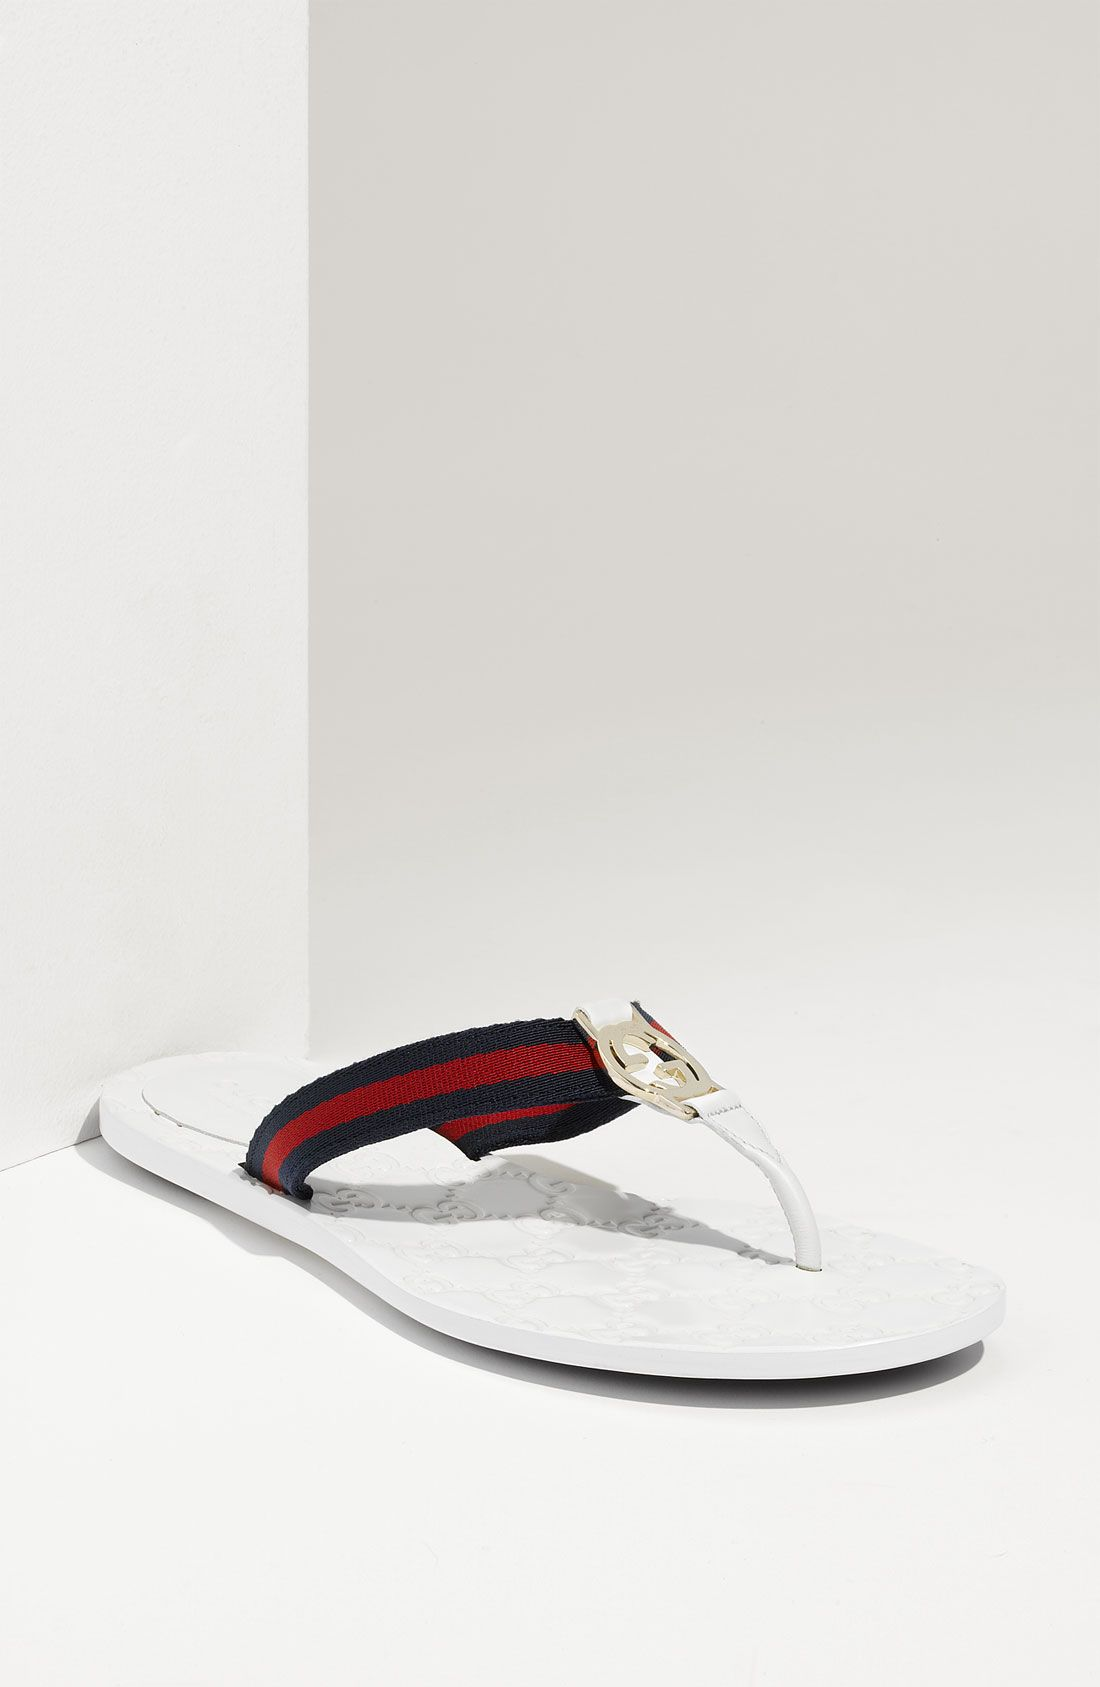 gucci sandals for women - Google Search